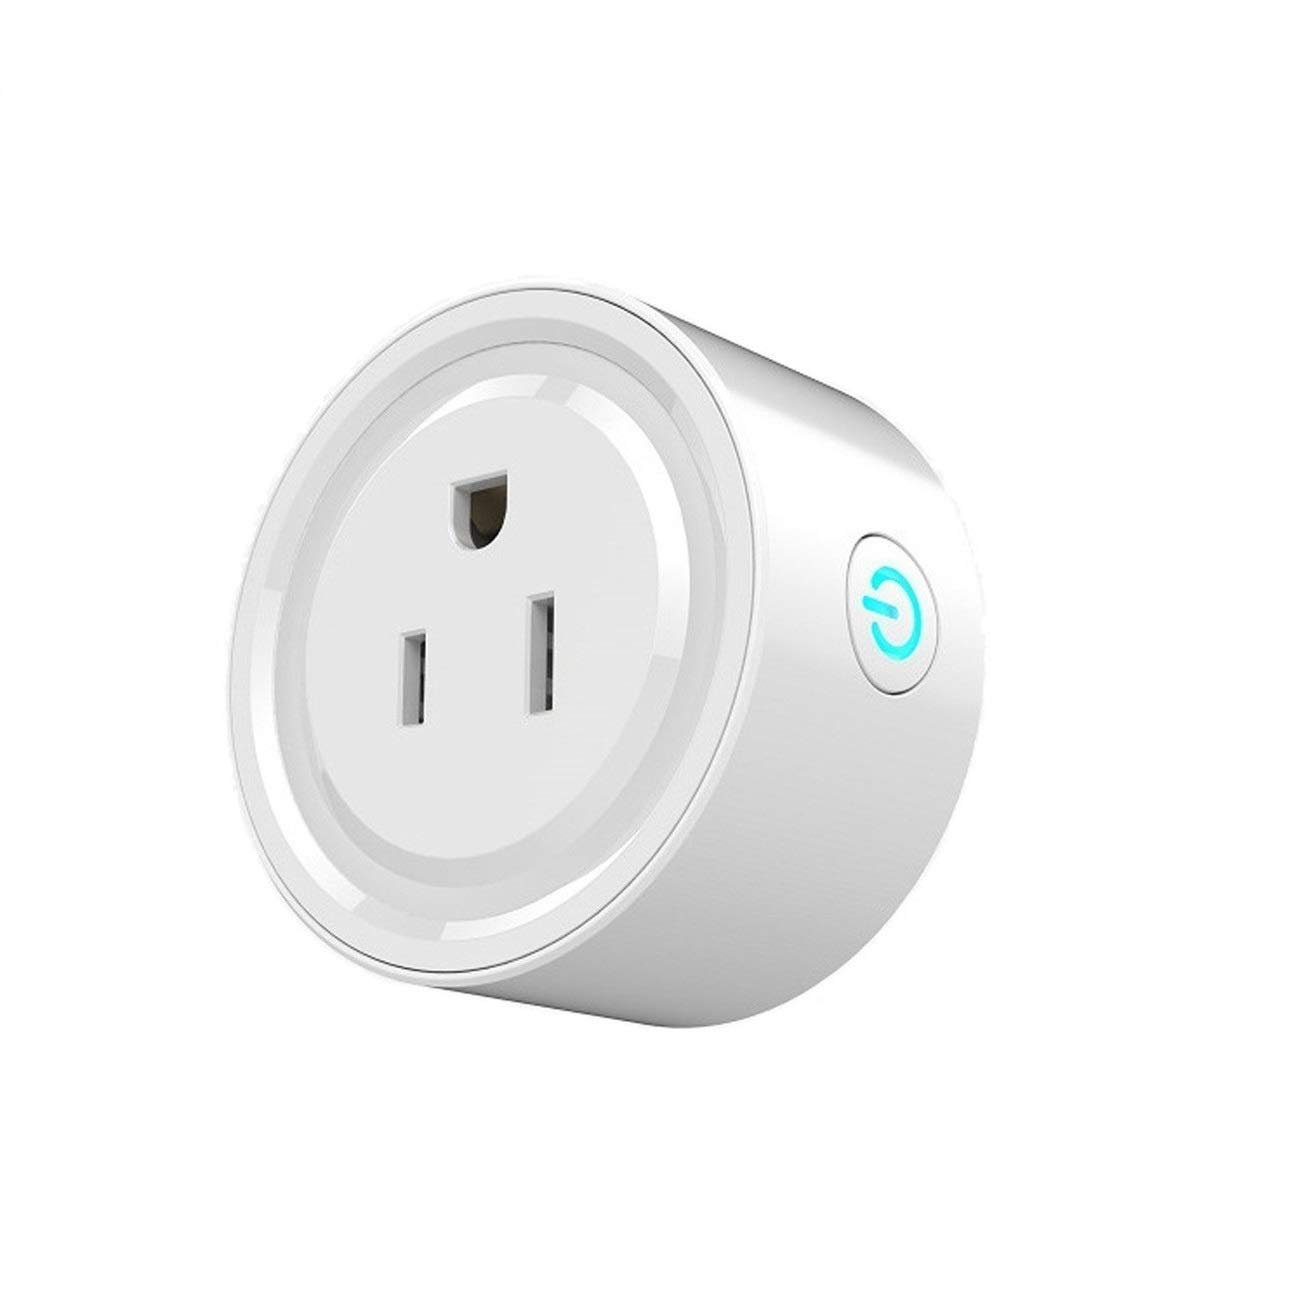 Mini Smart Socket Wifi Plug US Work with Alexa Echo Dot Voice Control No Hub Required Timing Function (2 Pack) by EVO-SMART (Image #2)